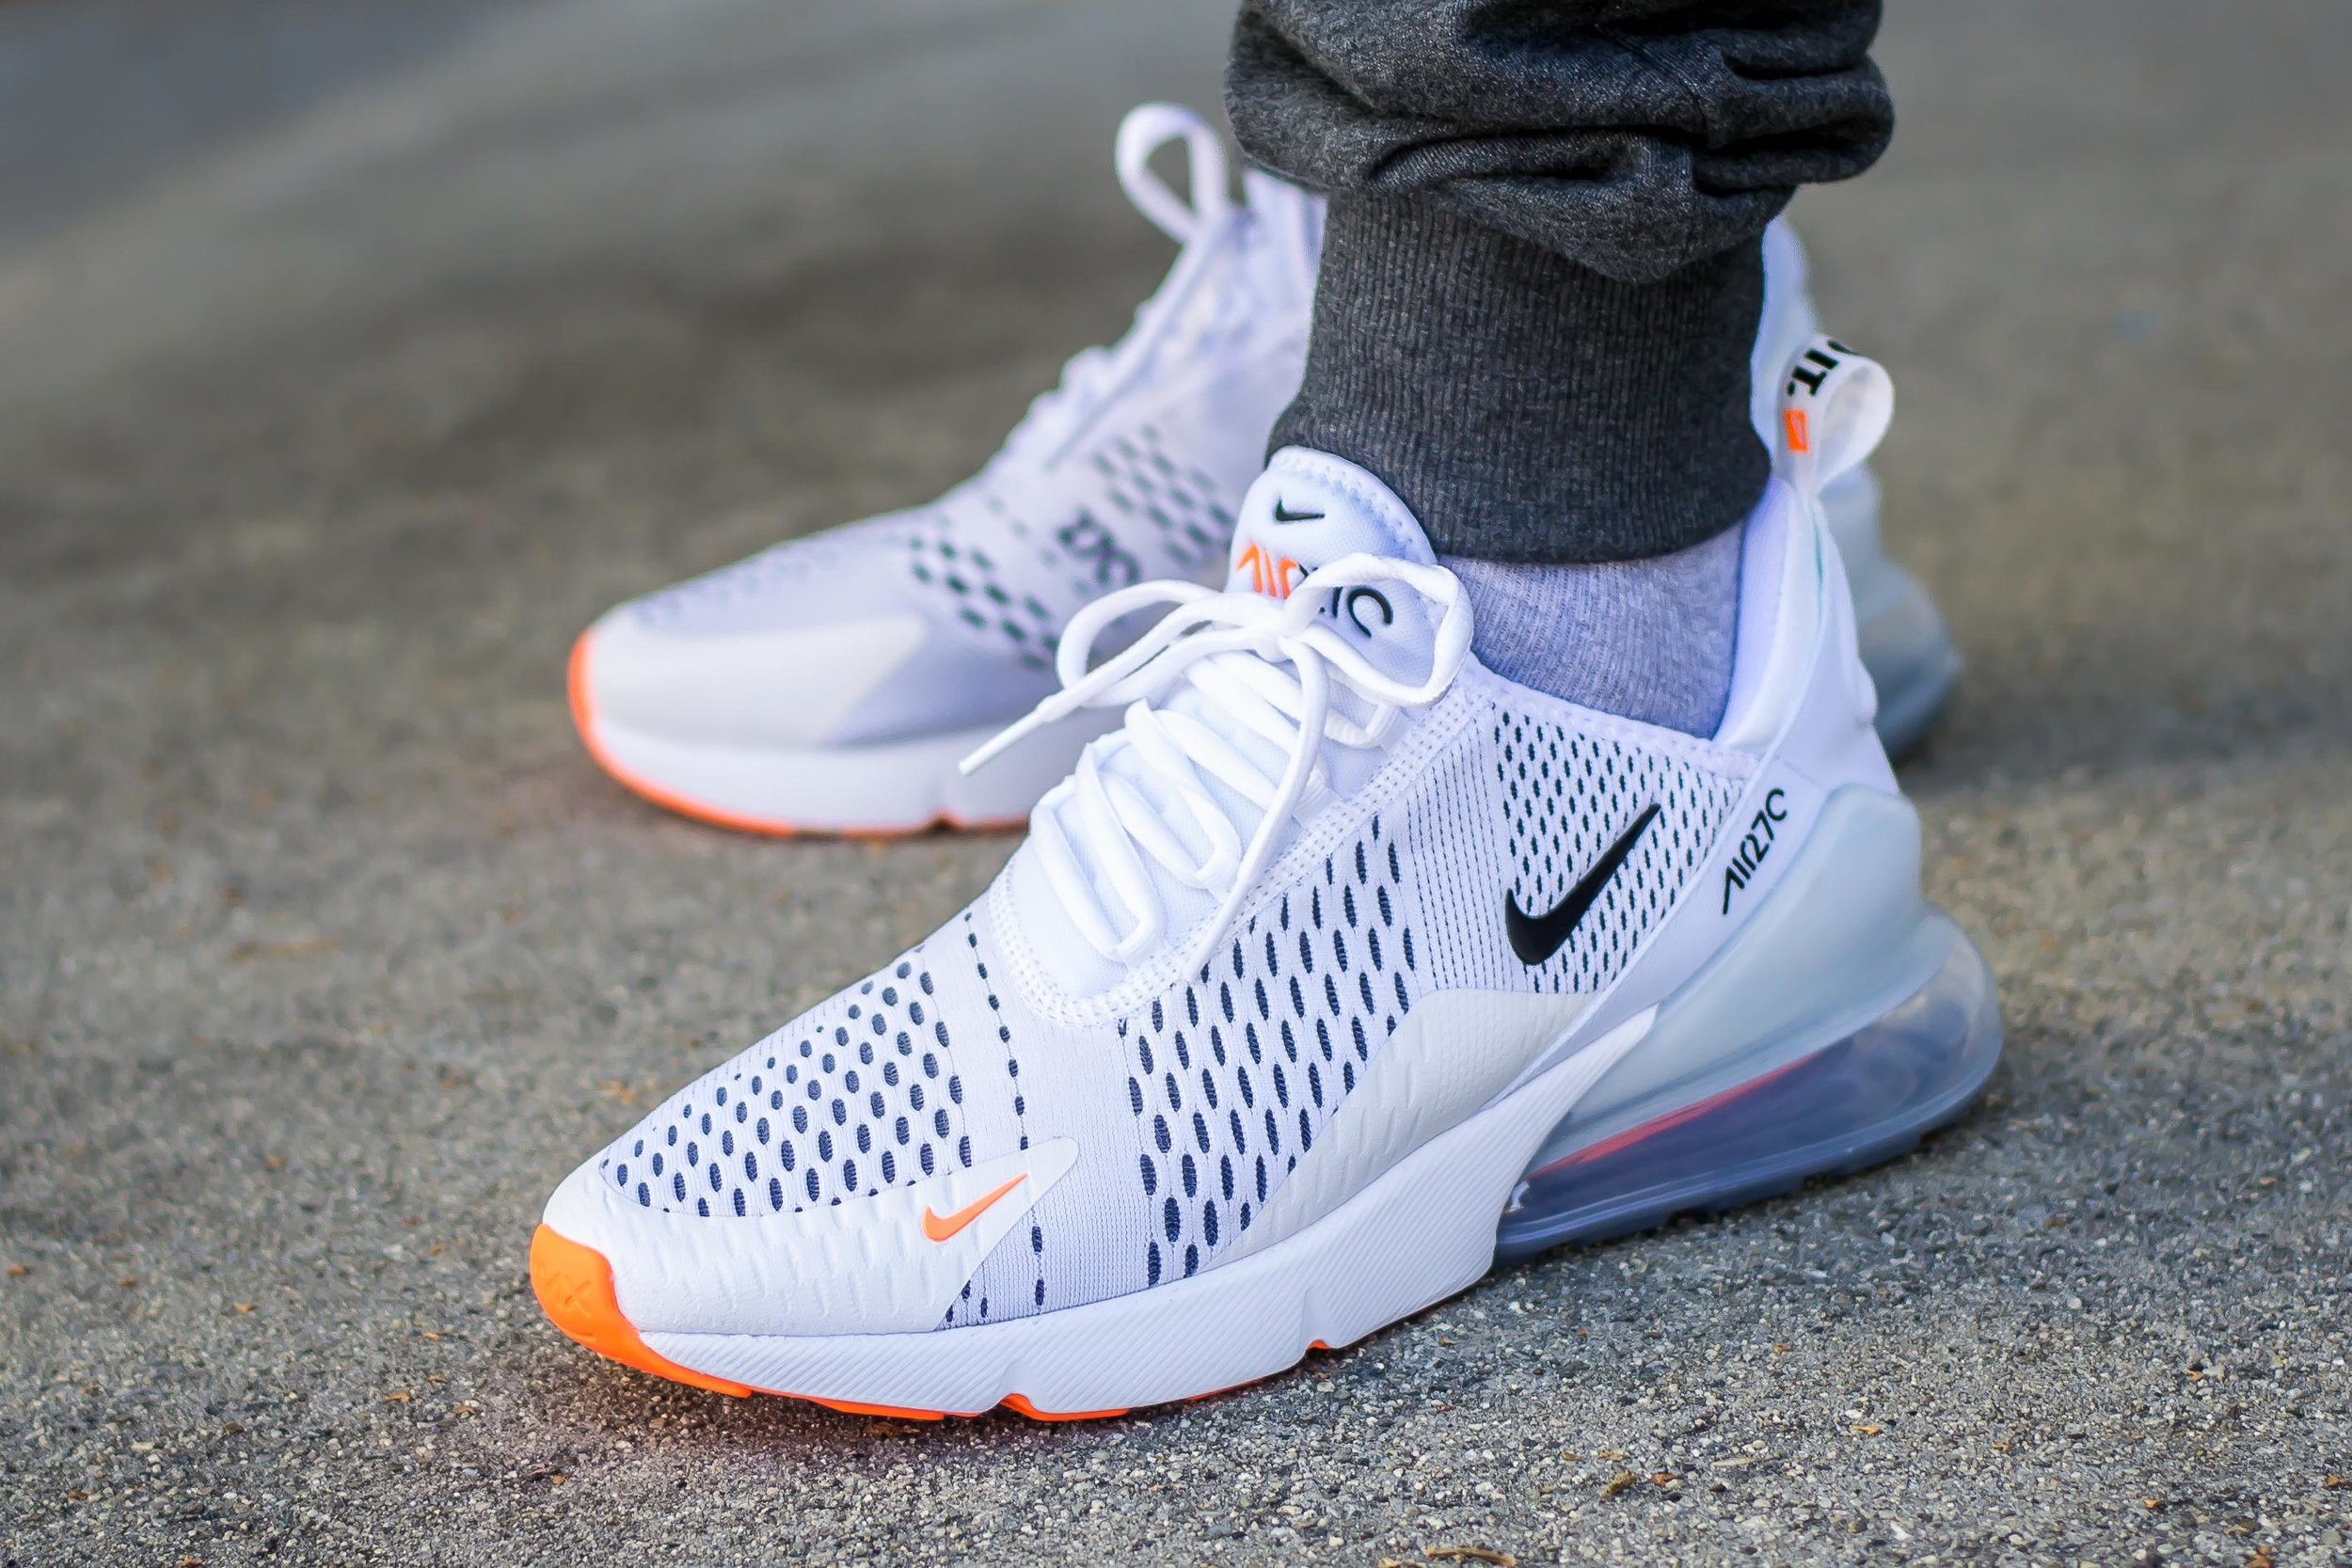 On Sale Nike Air Max 270 Just Do It White Orange Sneaker Shouts